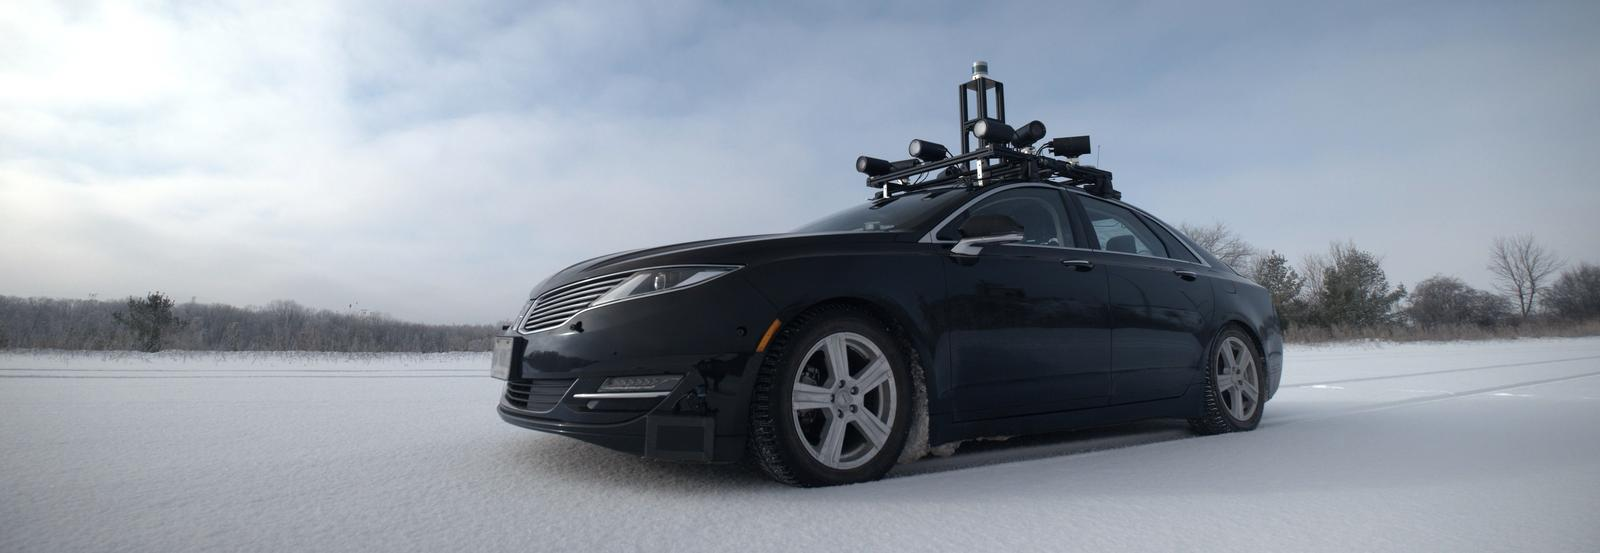 Autonomoose car in winter